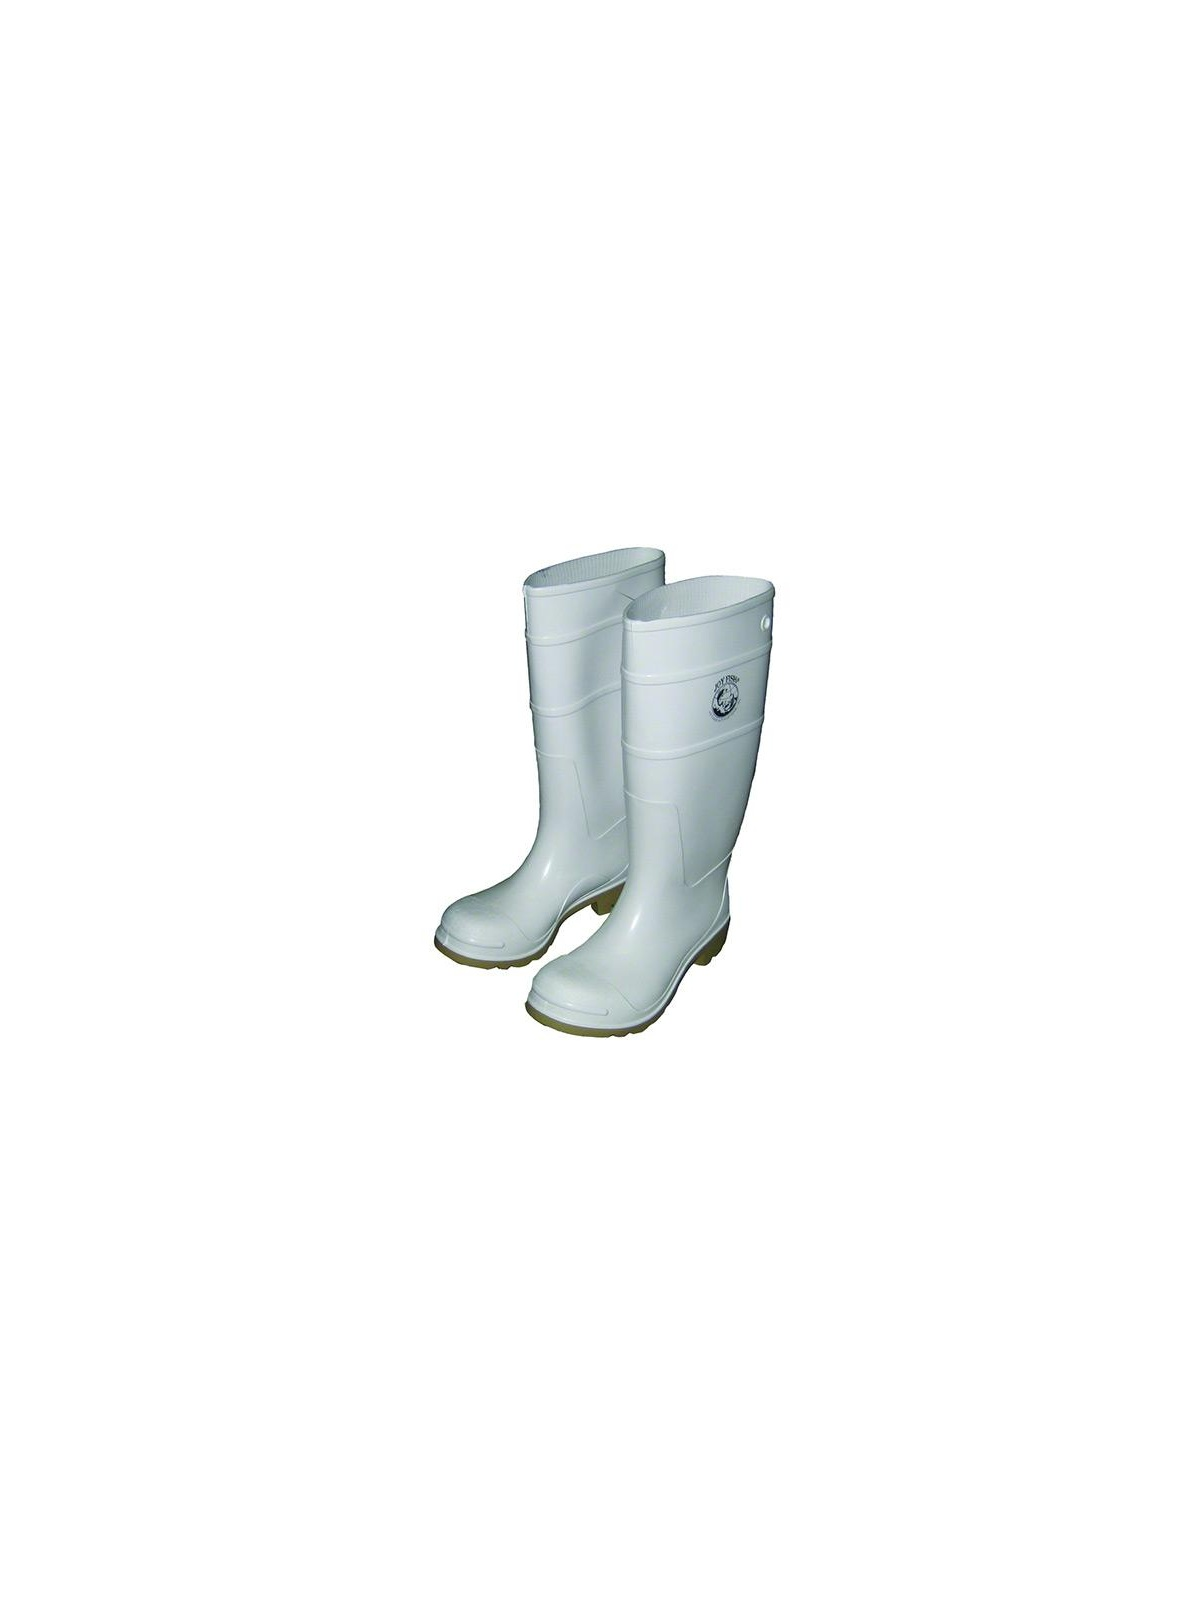 "Joy Fish BOOT11-JOYFISH-W White PVC 16"" Boot Men's Sz11, BOOT-11-JOYFISH-W"